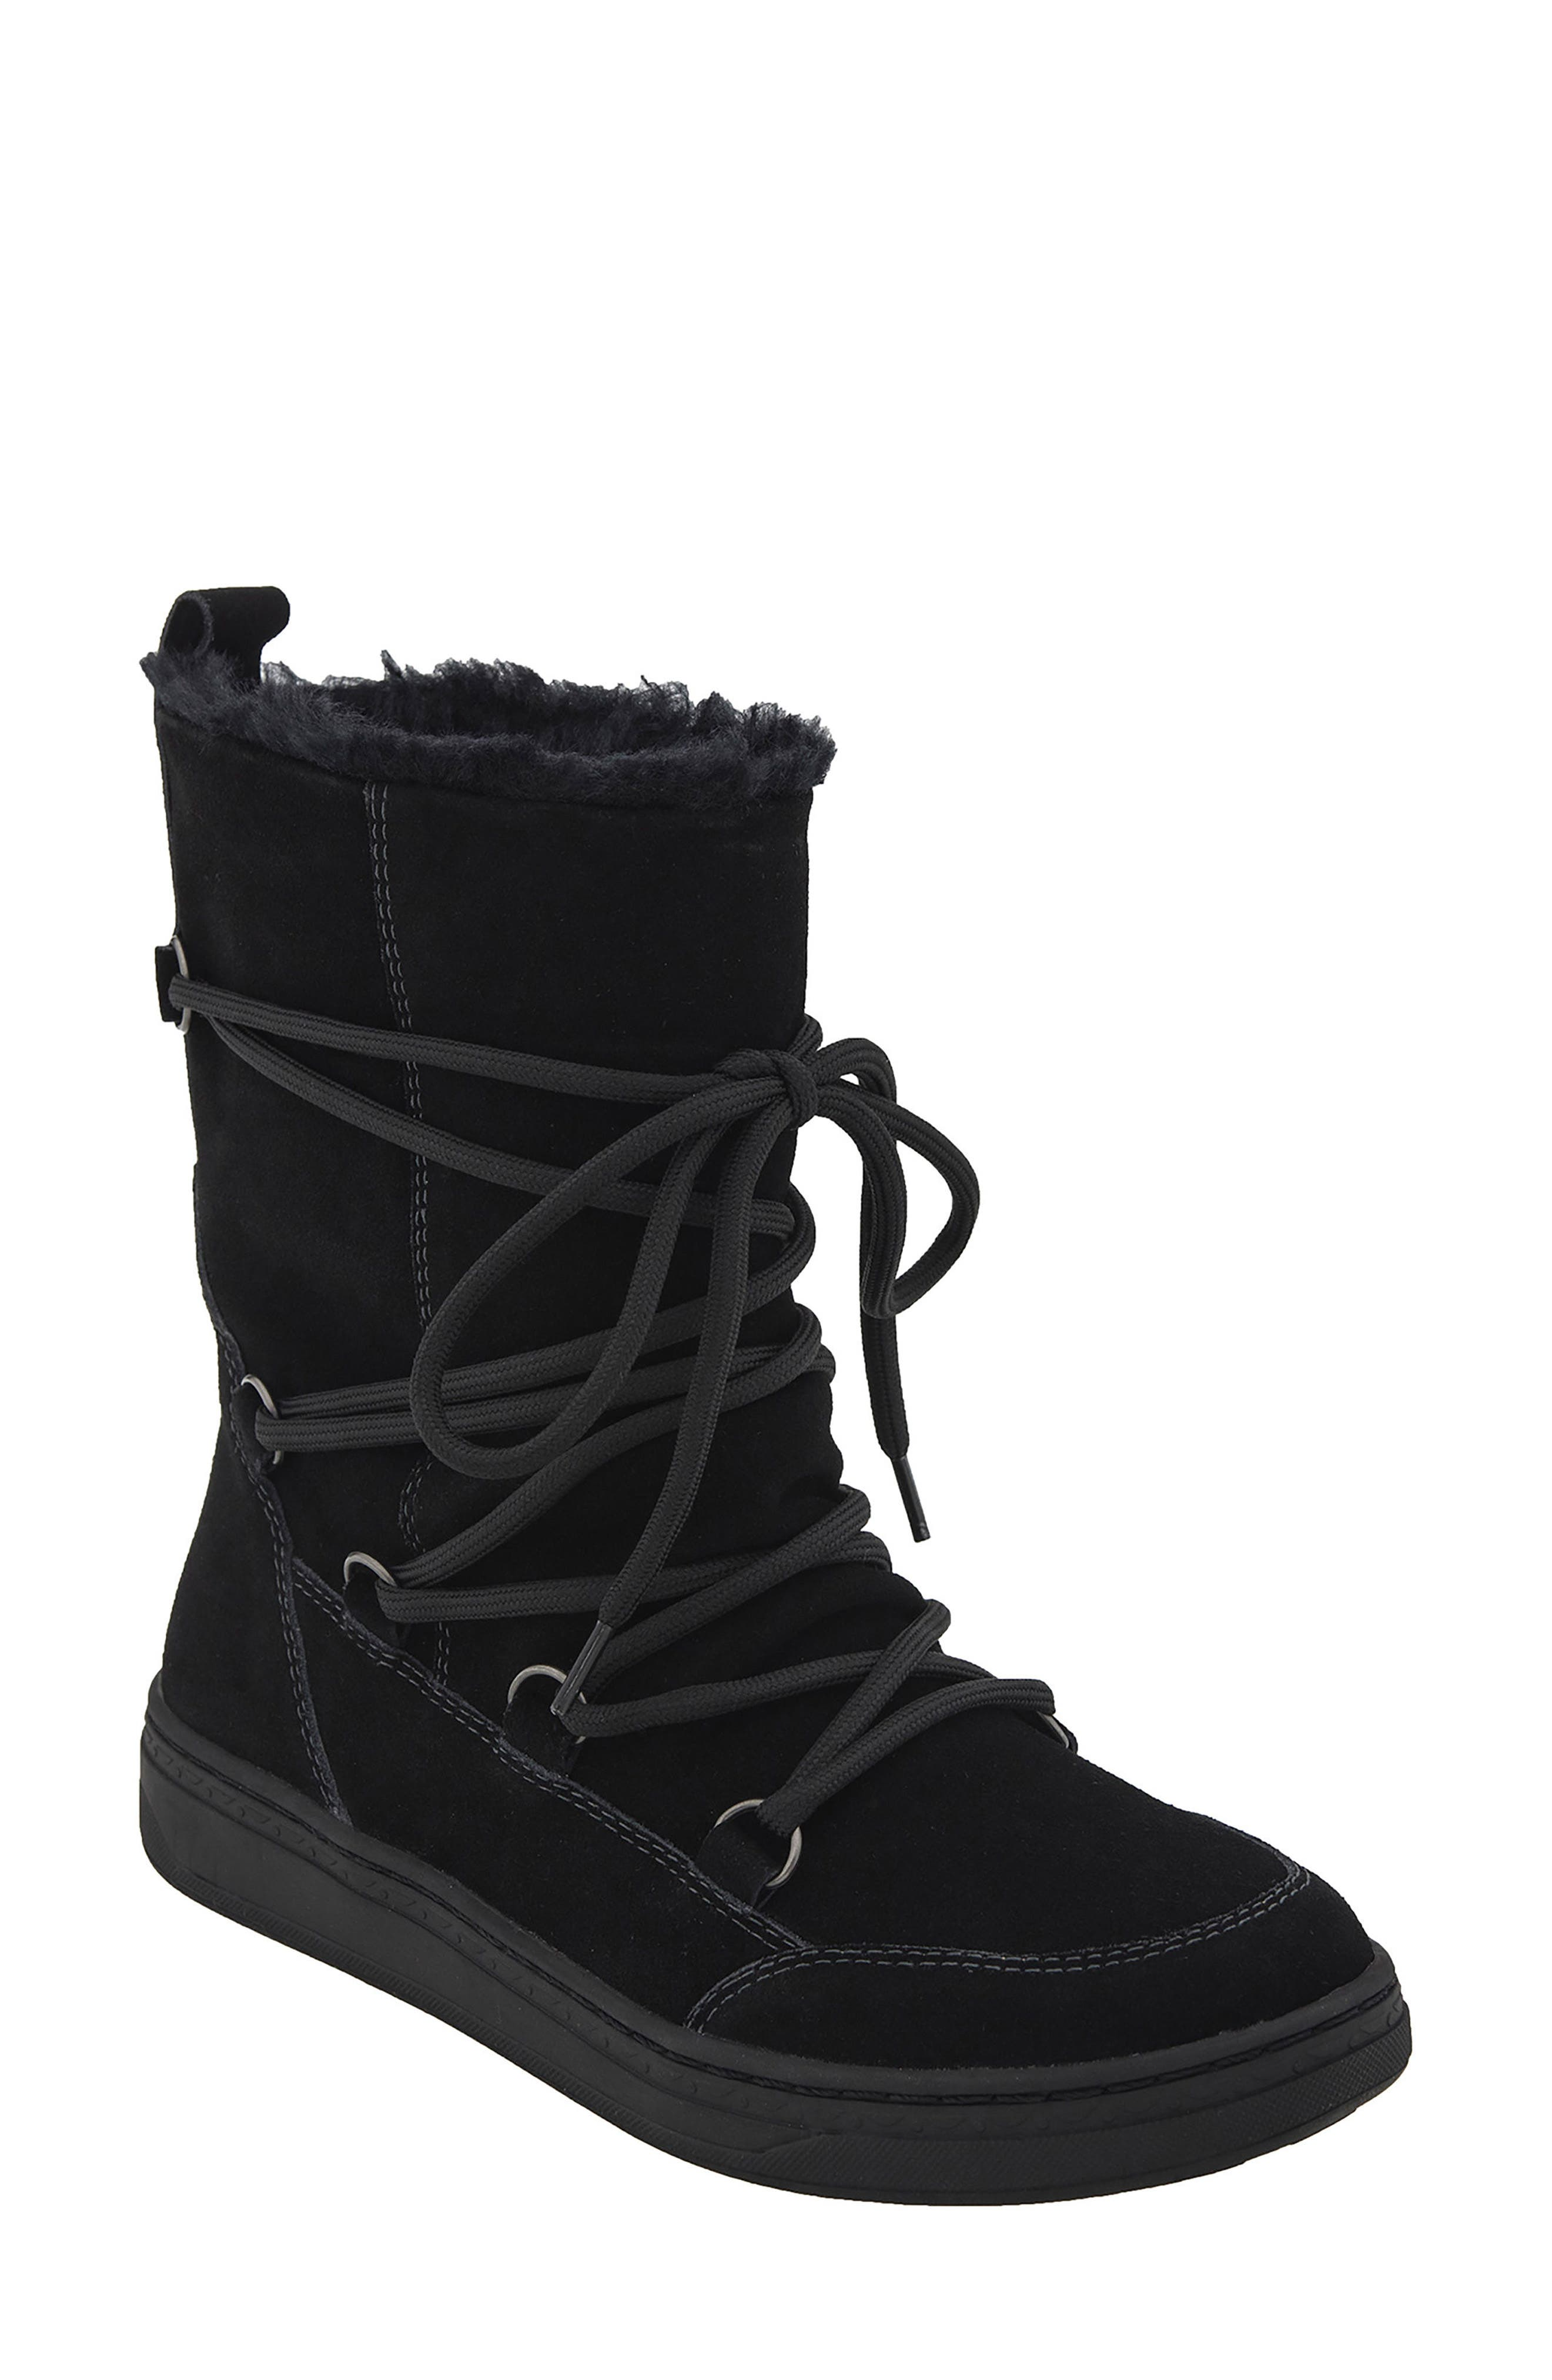 Zodiac Water Resistant Boot,                             Main thumbnail 1, color,                             BLACK SUEDE